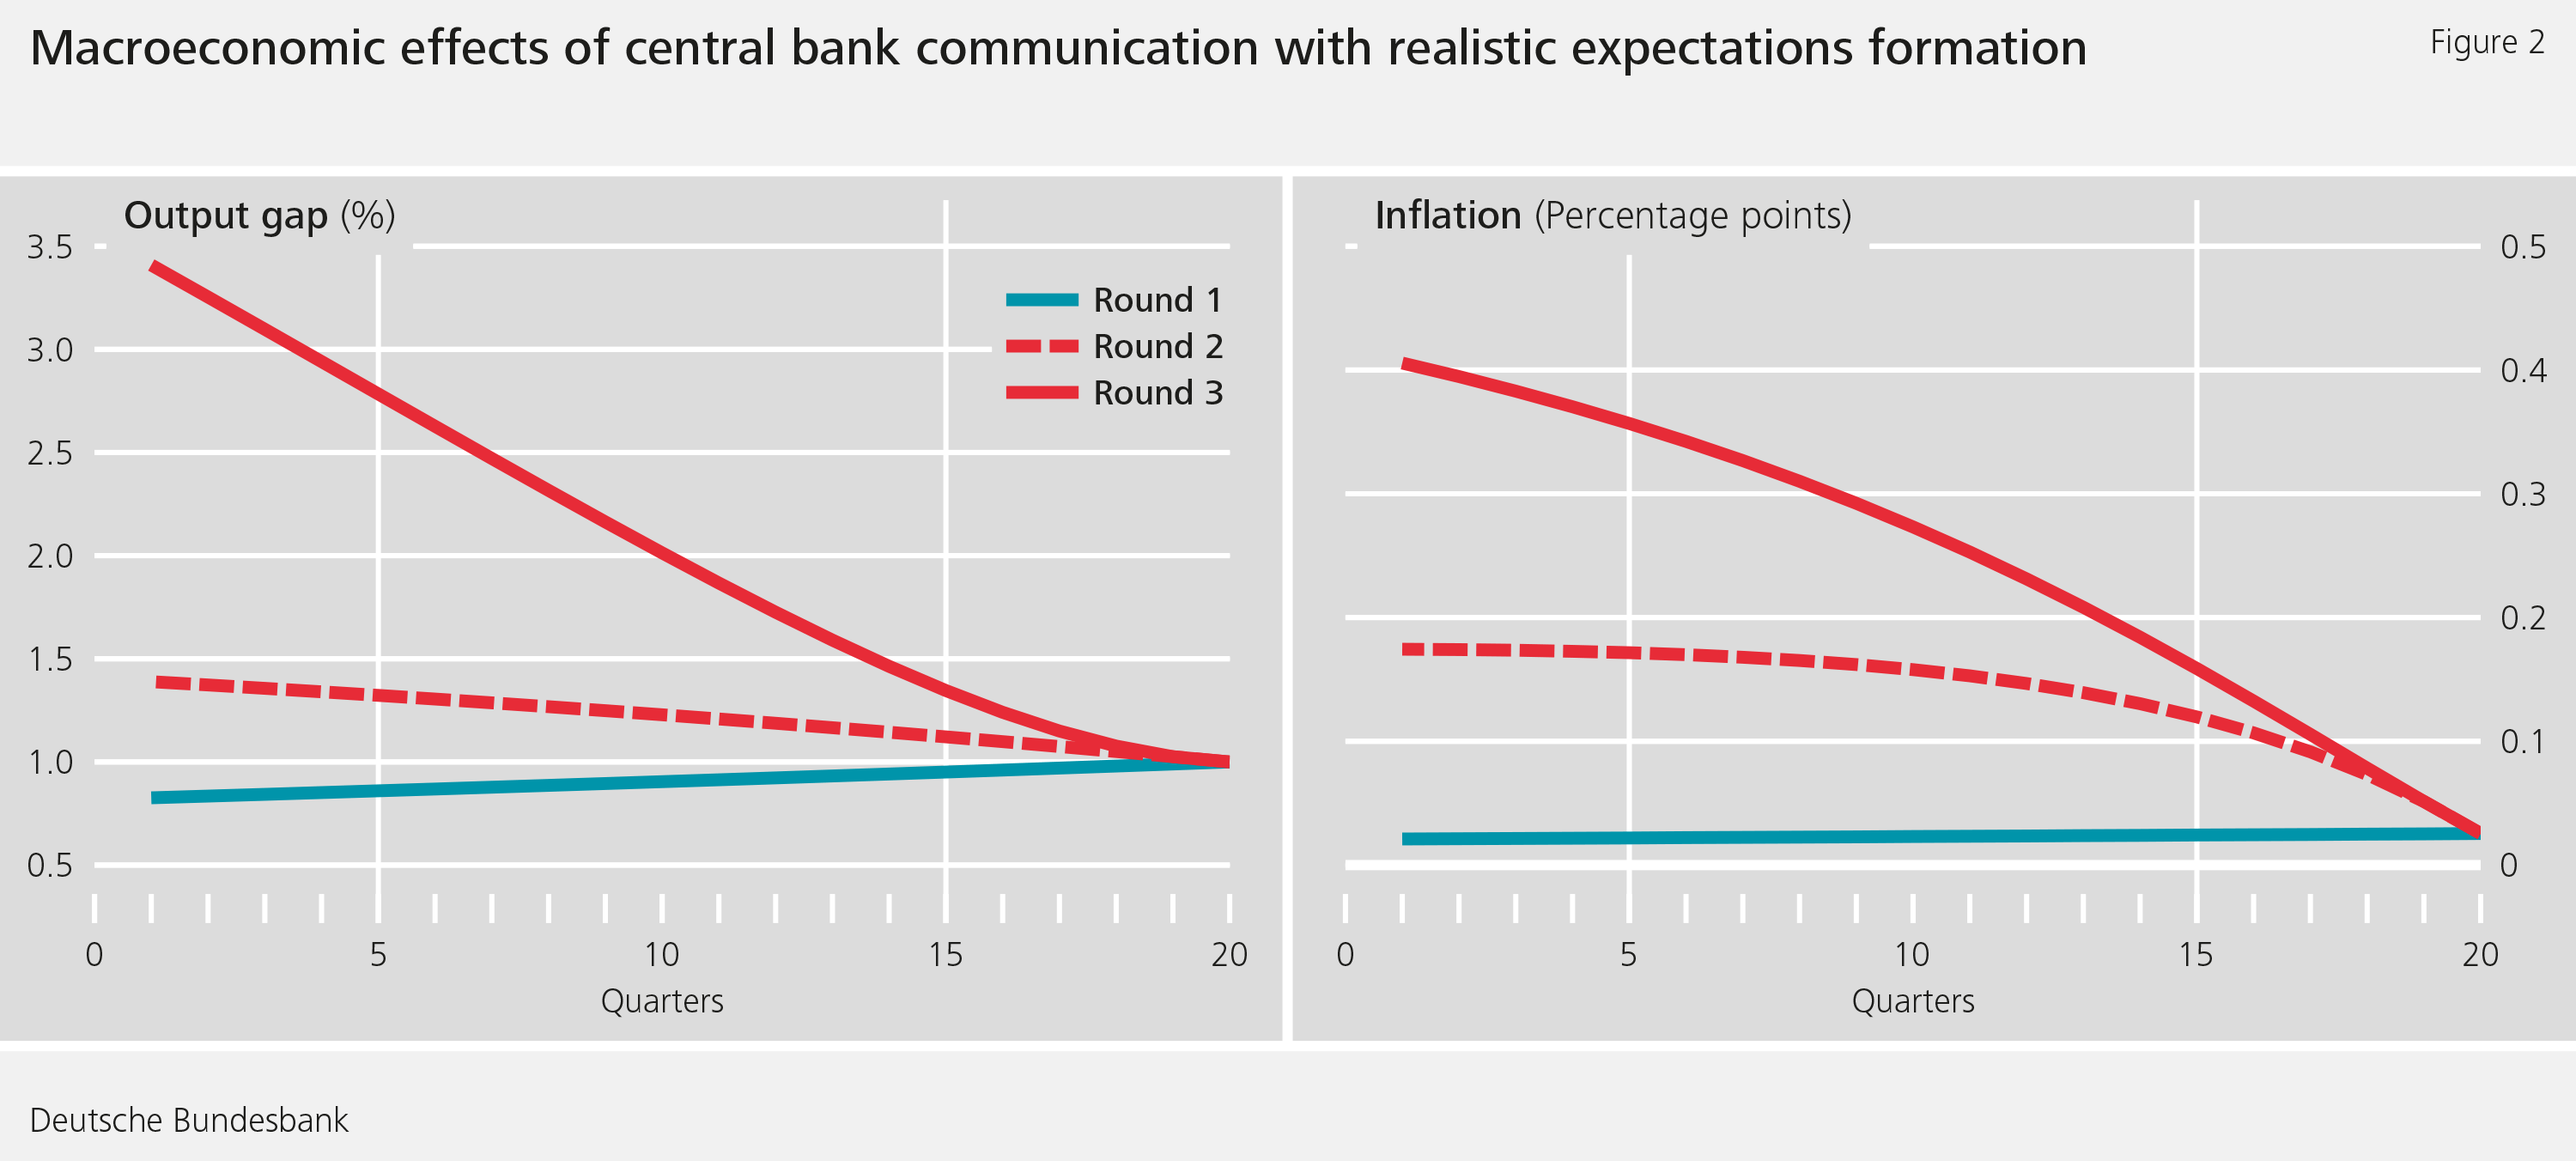 Figure 2: Macroeconomic effects of central bank communication with realistic expectations formationDeutsche